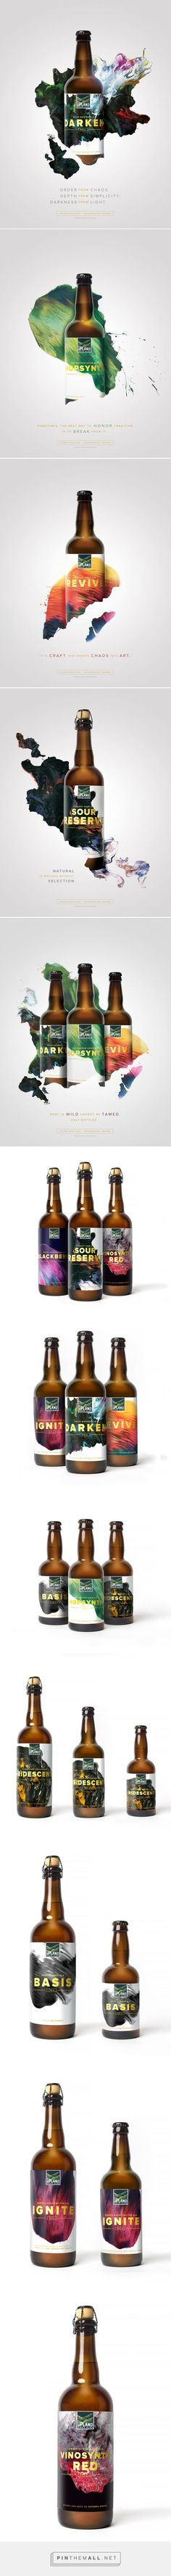 Upland Sour Ales: Branding & Packaging by Young & Laramore